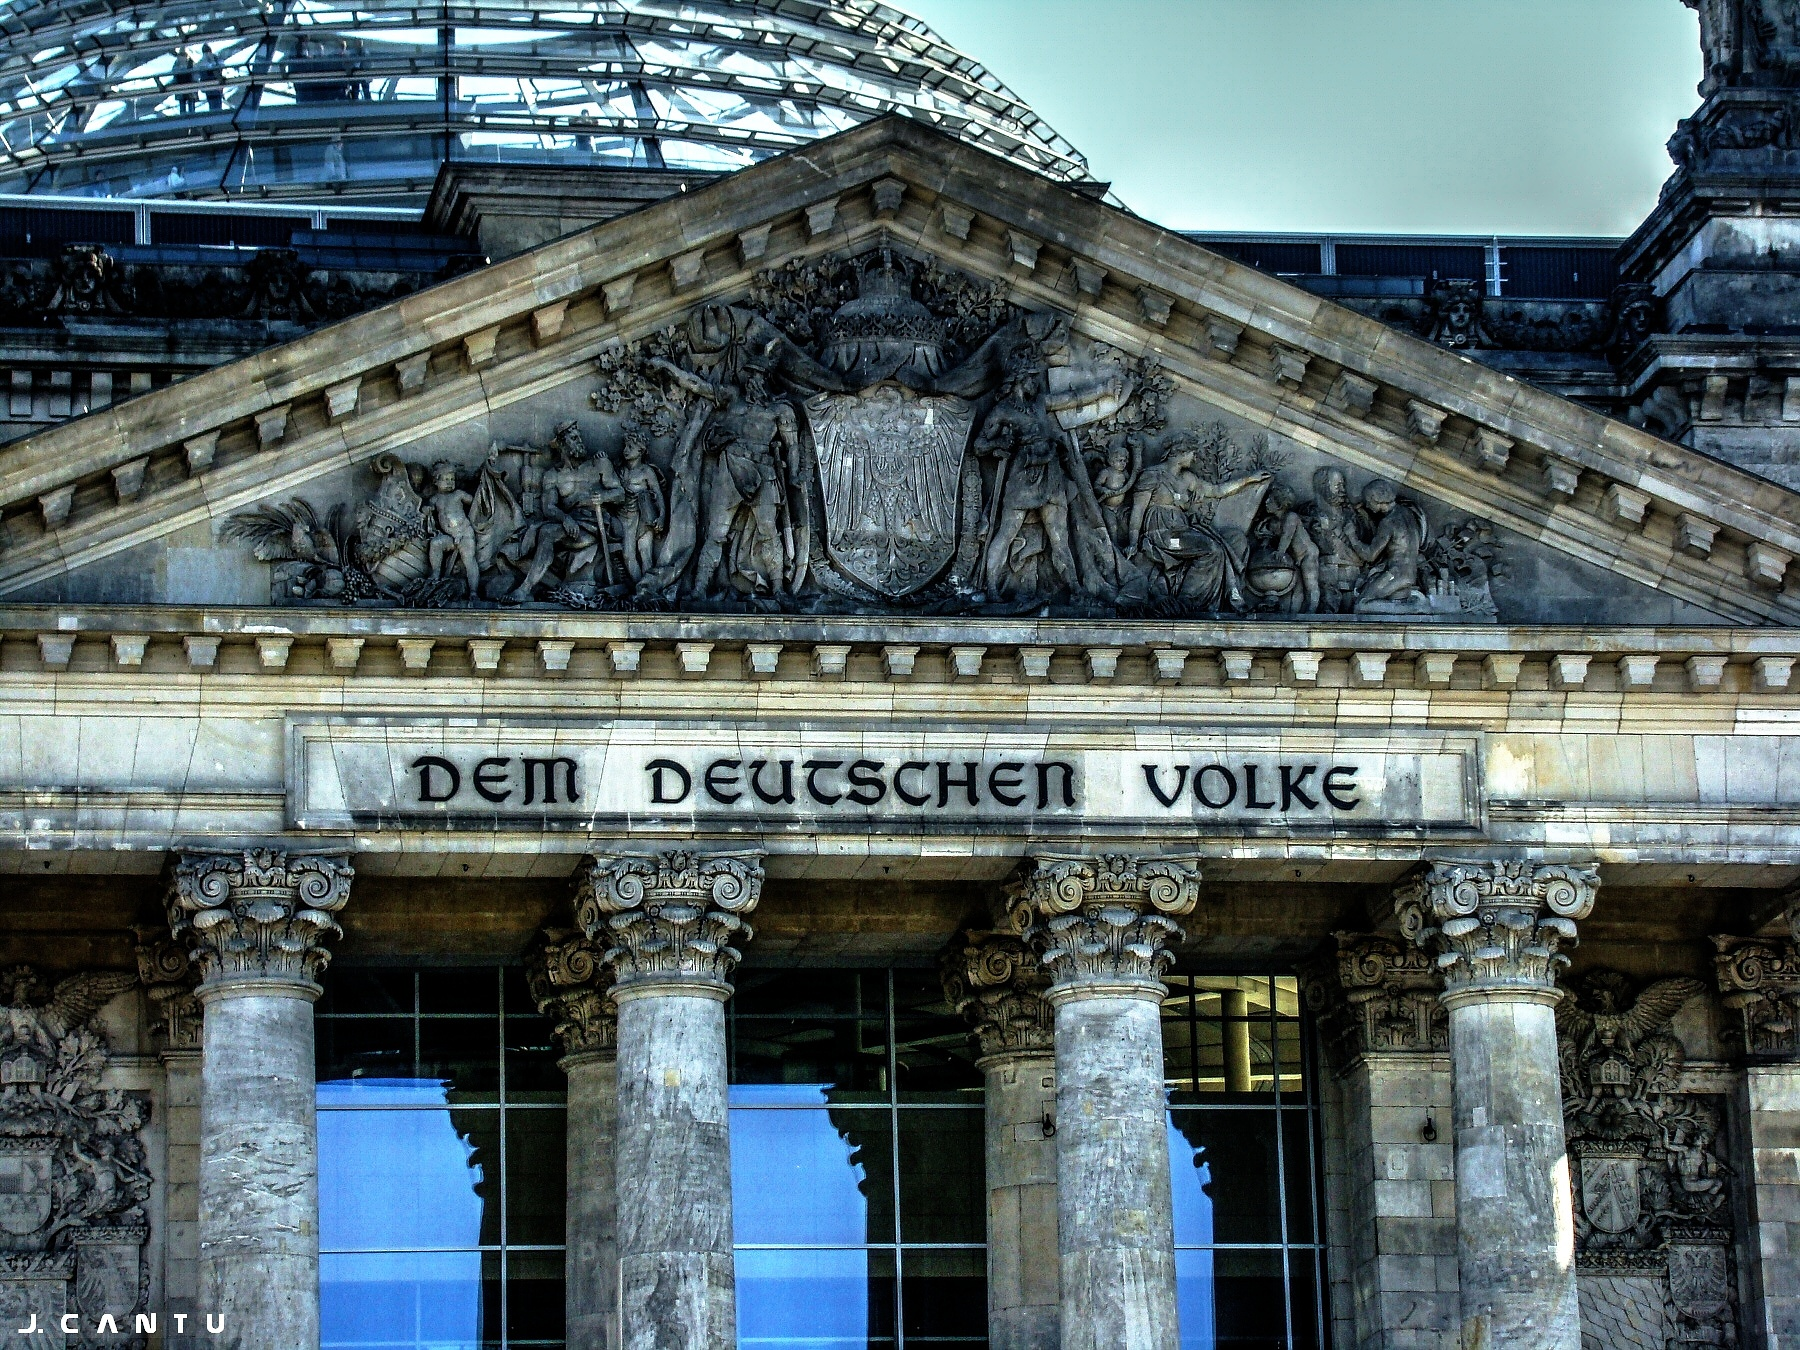 Reichstag Building by Jaime Cantu